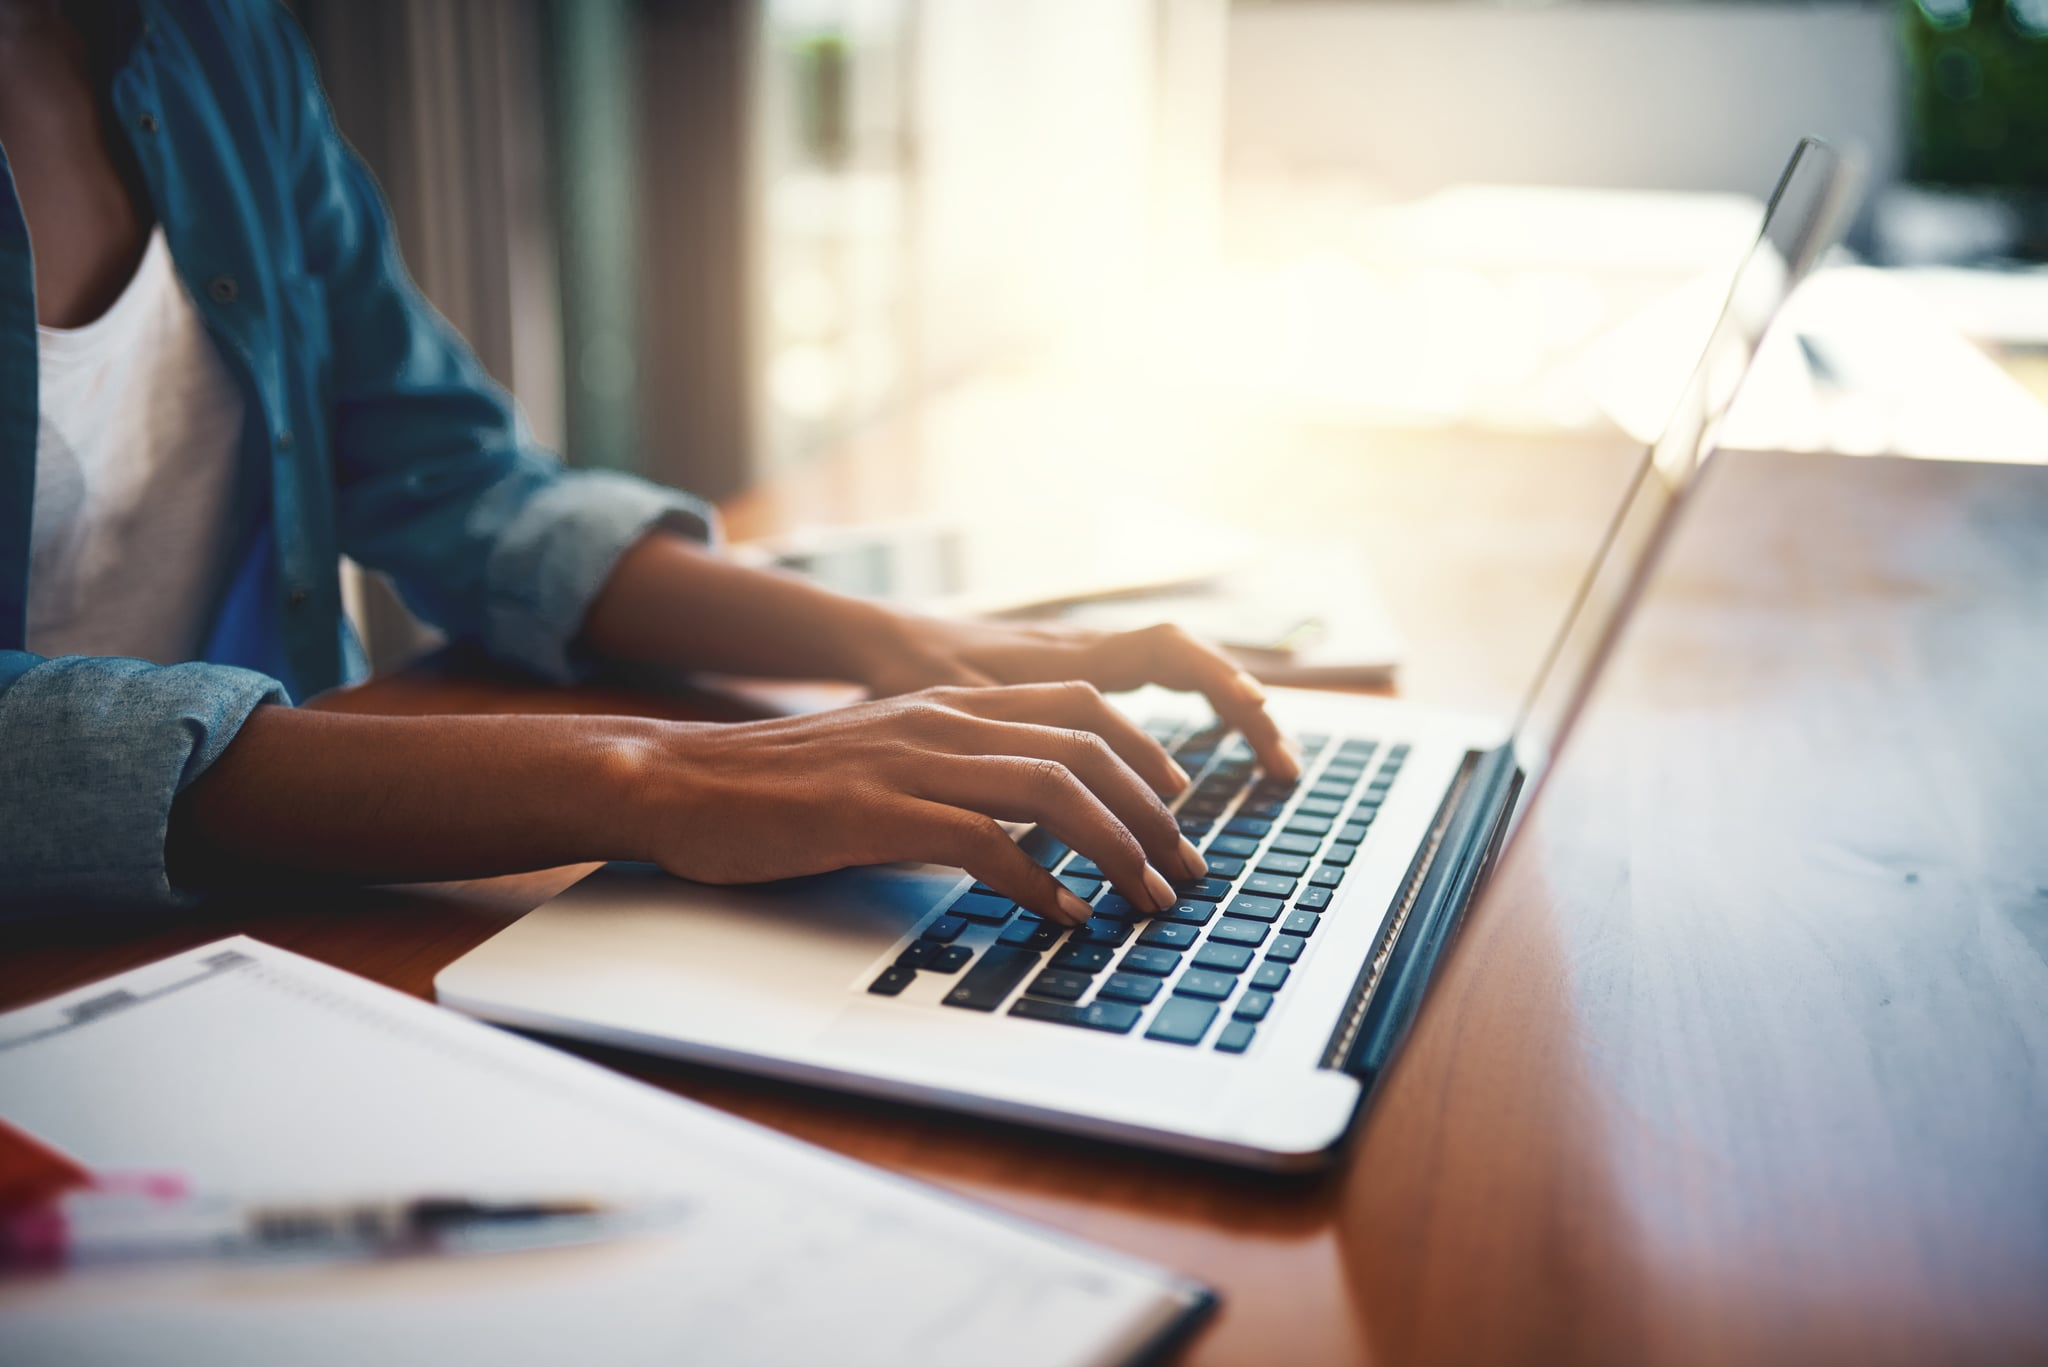 Closeup shot of an unrecognisable woman using a laptop while working from home